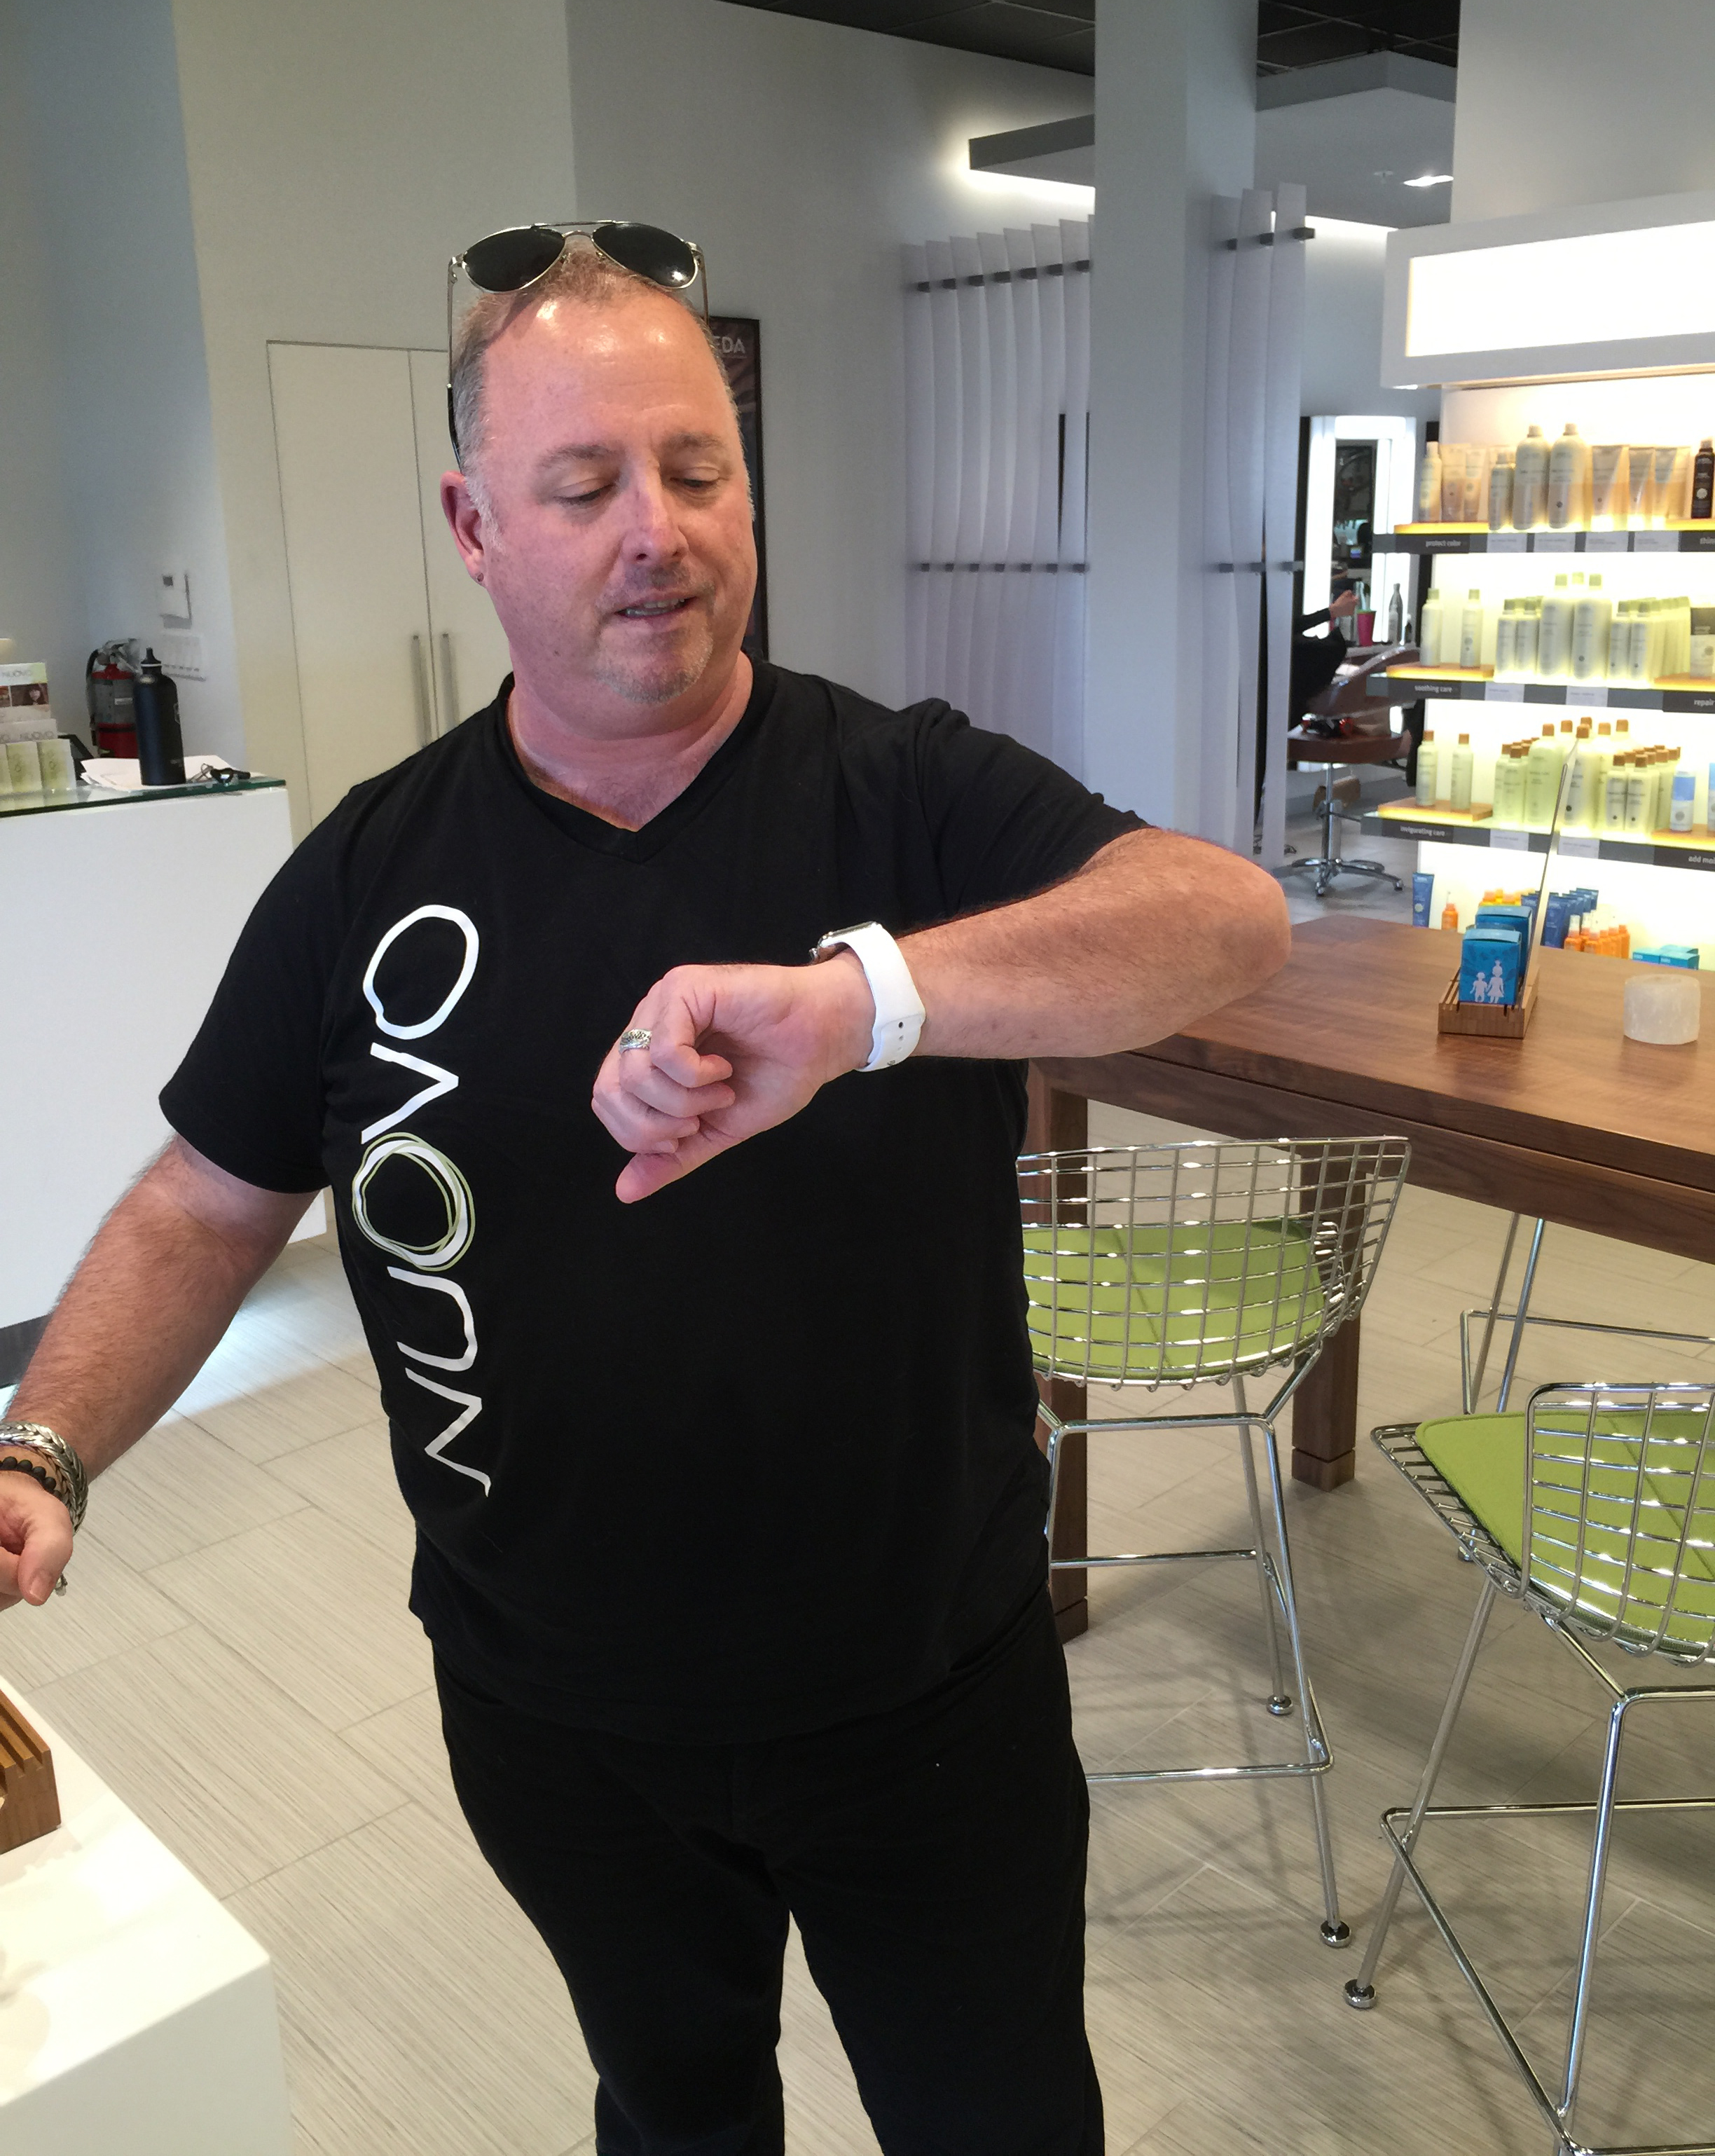 Terry McKee, co-owner of Nuovo Salon Group in Sarasota, Florida, is just learning all the new ways his Apple Watch can help with the management of the salon.